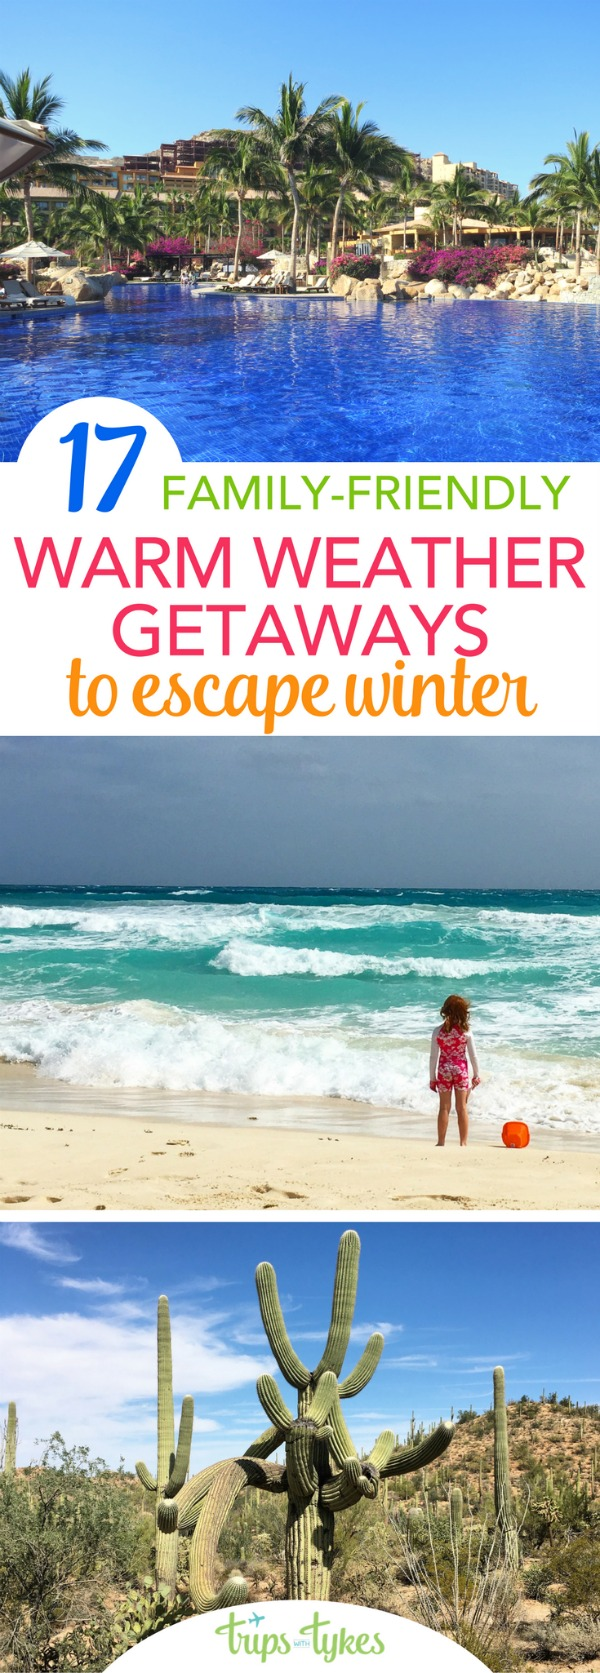 Sick of winter weather? Warm weather destinations and getaways to escape the snow and ice this winter - all perfect for family travelers with kids of all ages! #familytravel #traveltip #hawaii #mexico #TMOM